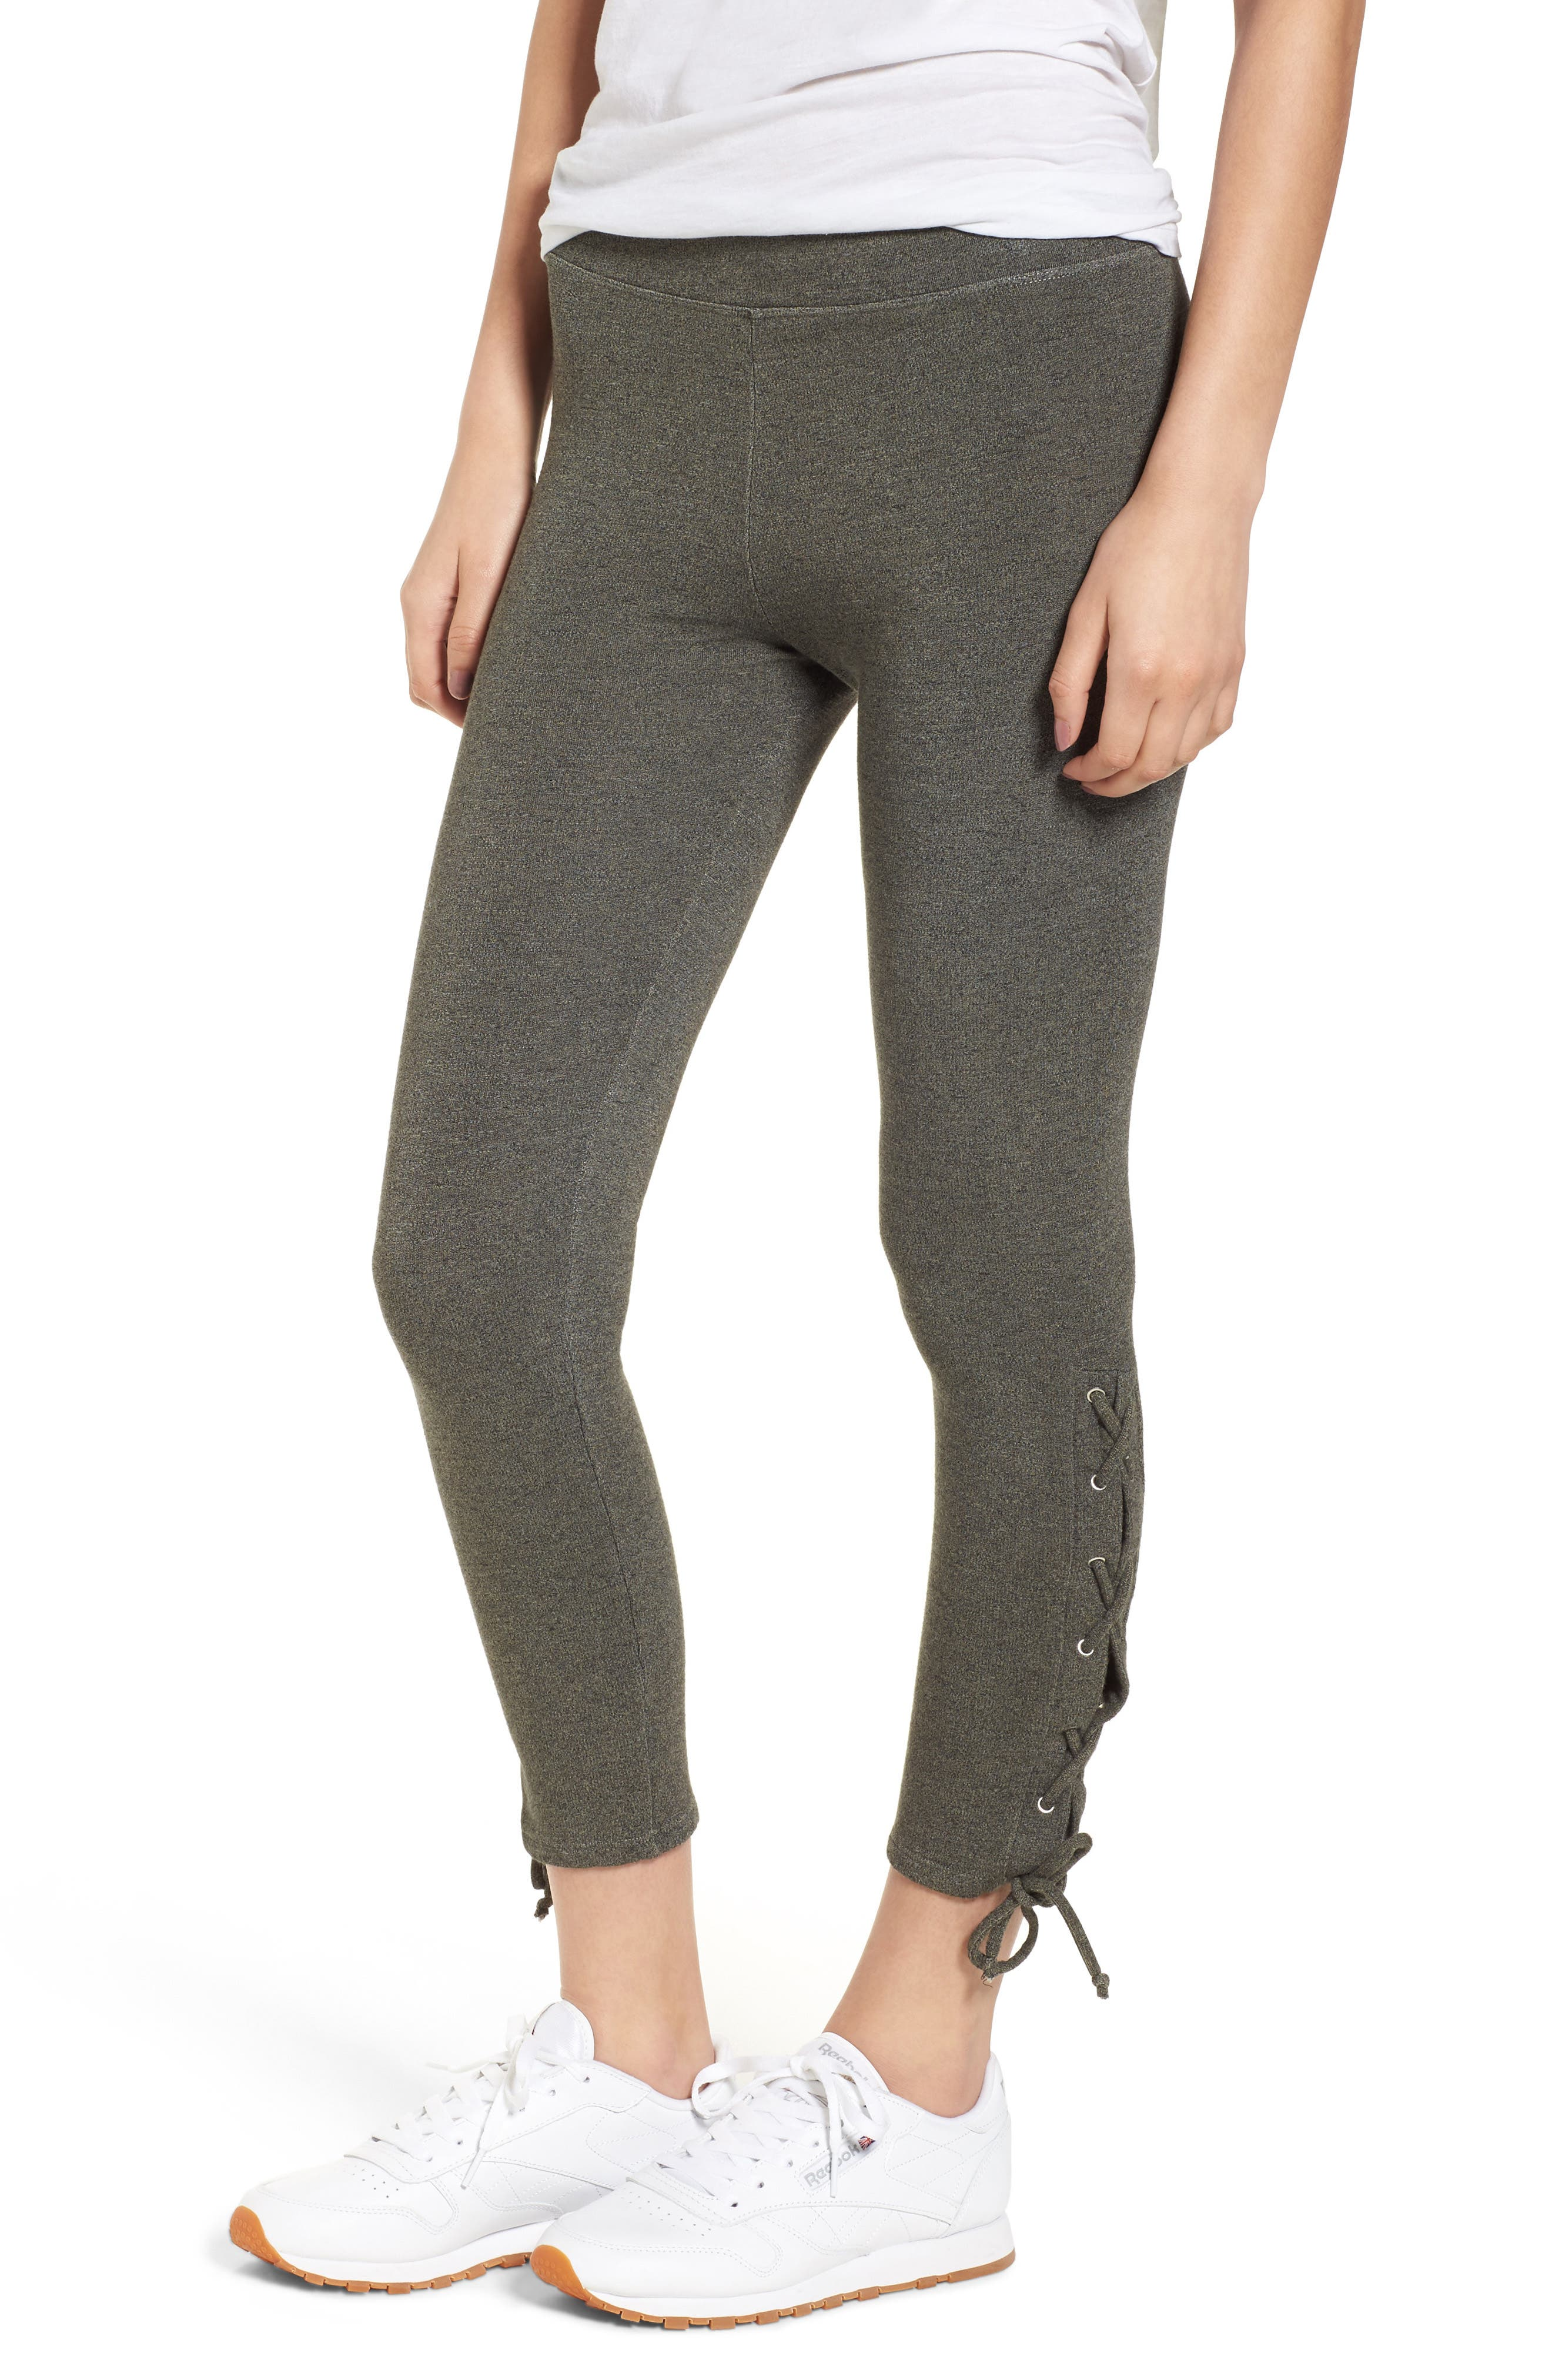 SUNDRY,                             Lace-Up Ankle Leggings,                             Main thumbnail 1, color,                             309